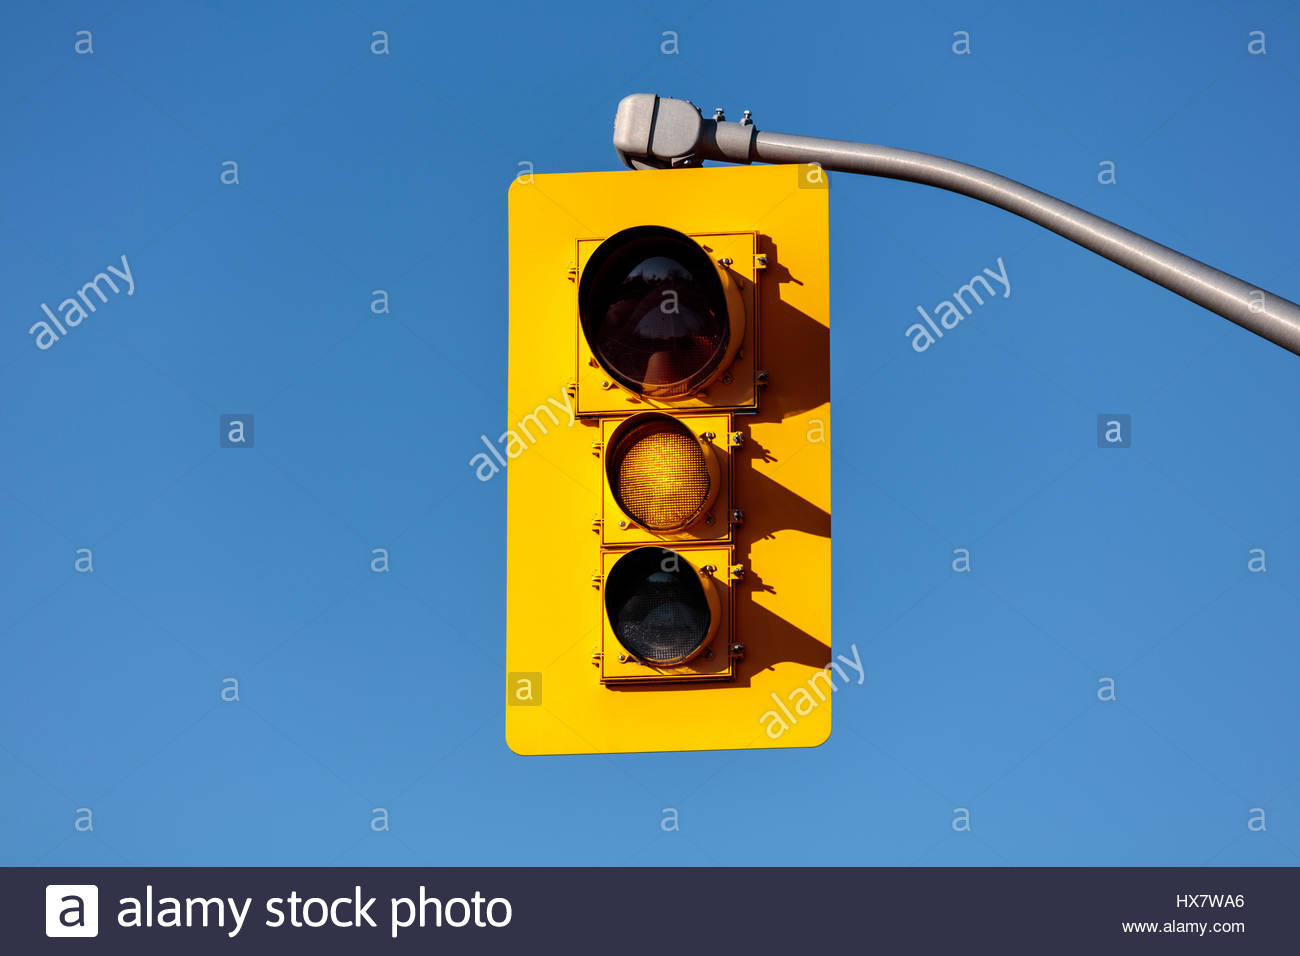 traffic lights, showing yellow, yellow, traffic signals, traffic lamps, signal lights, traffic control signals, Stock Photo